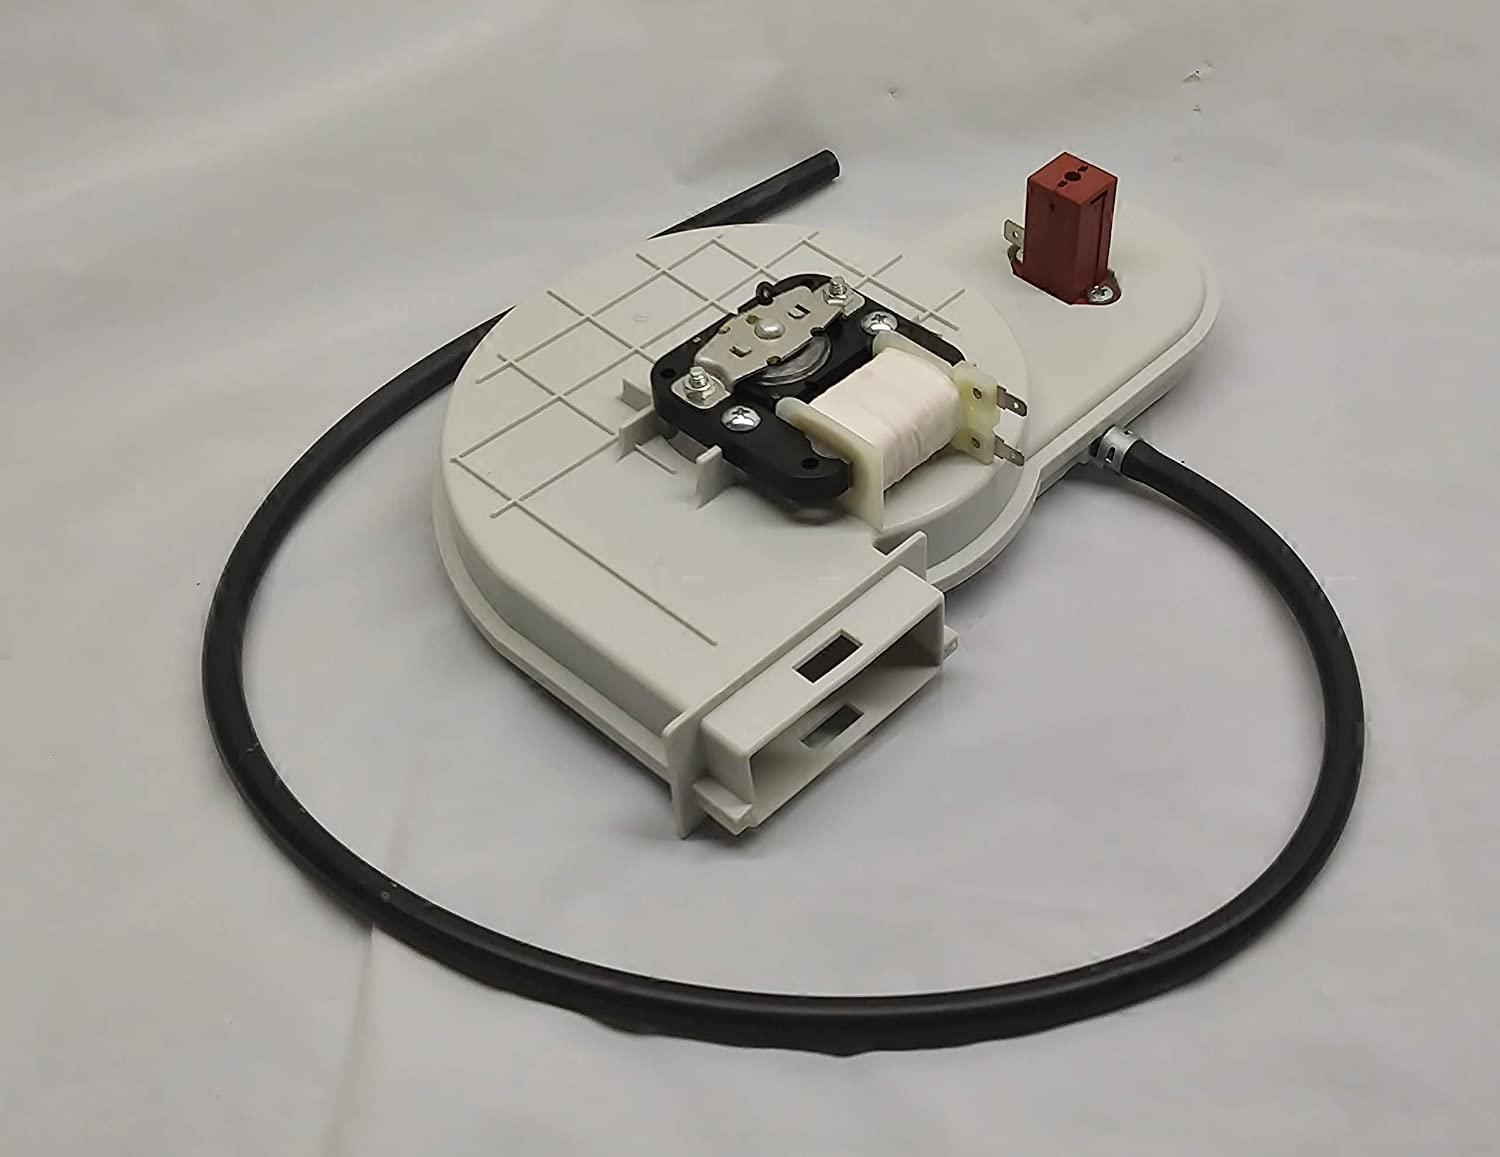 LG Electronics ABT35083801 6026050 Dishwasher Vent Fan Motor and Case Assembly